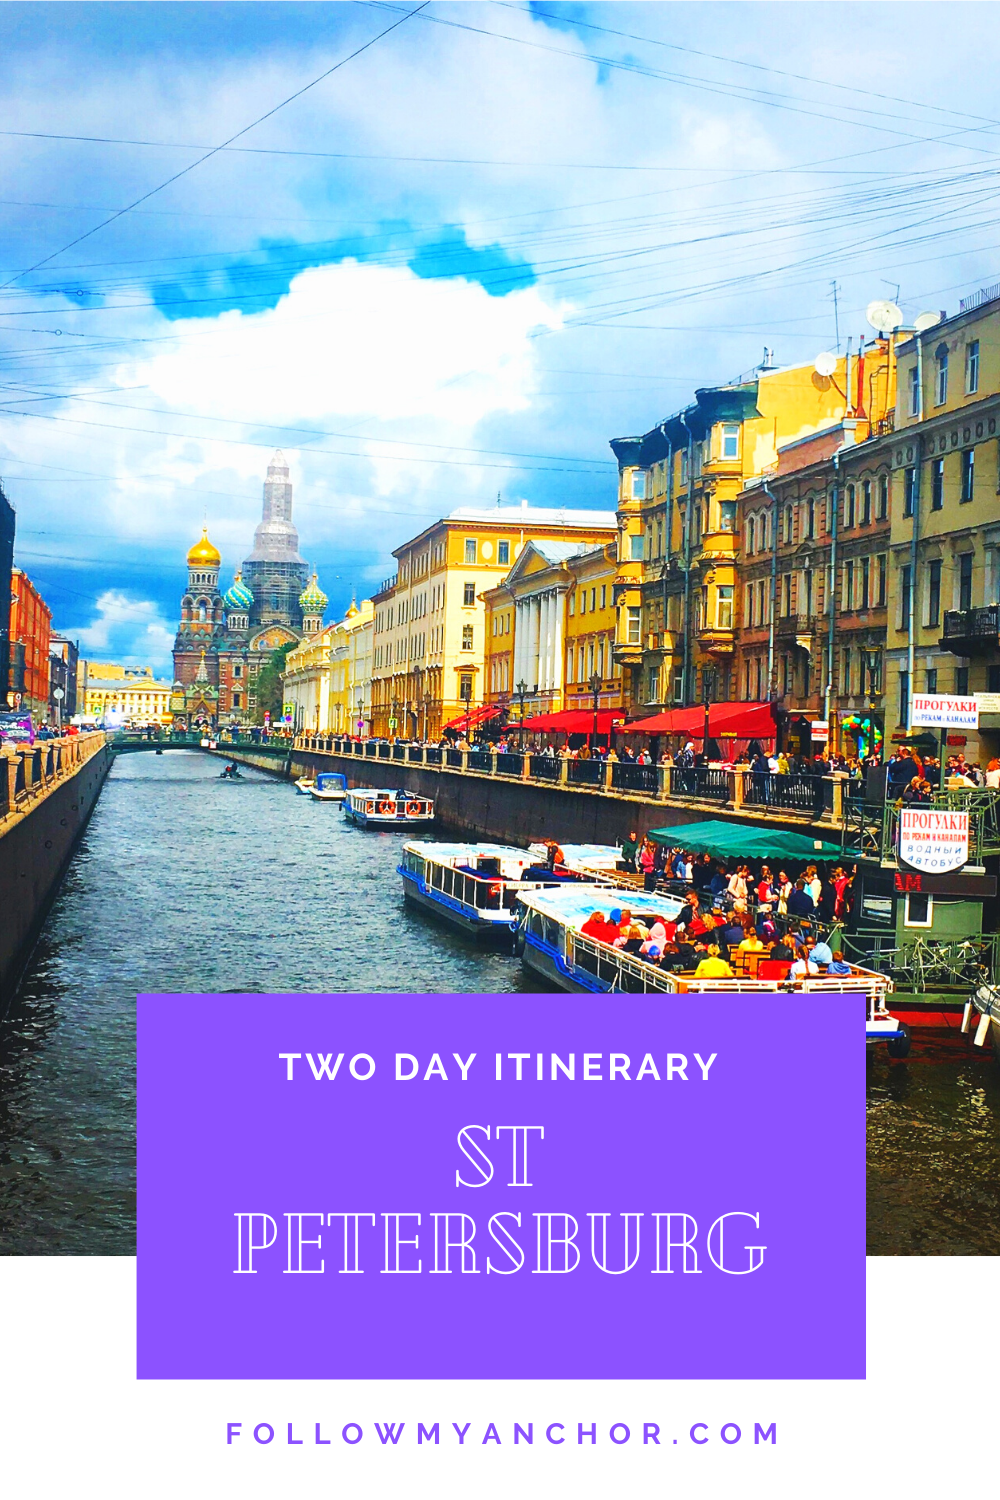 ST PETERSBURG, RUSSIA: THE ULTIMATE LIST OF THE BEST THINGS TO DO IN TWO DAYS